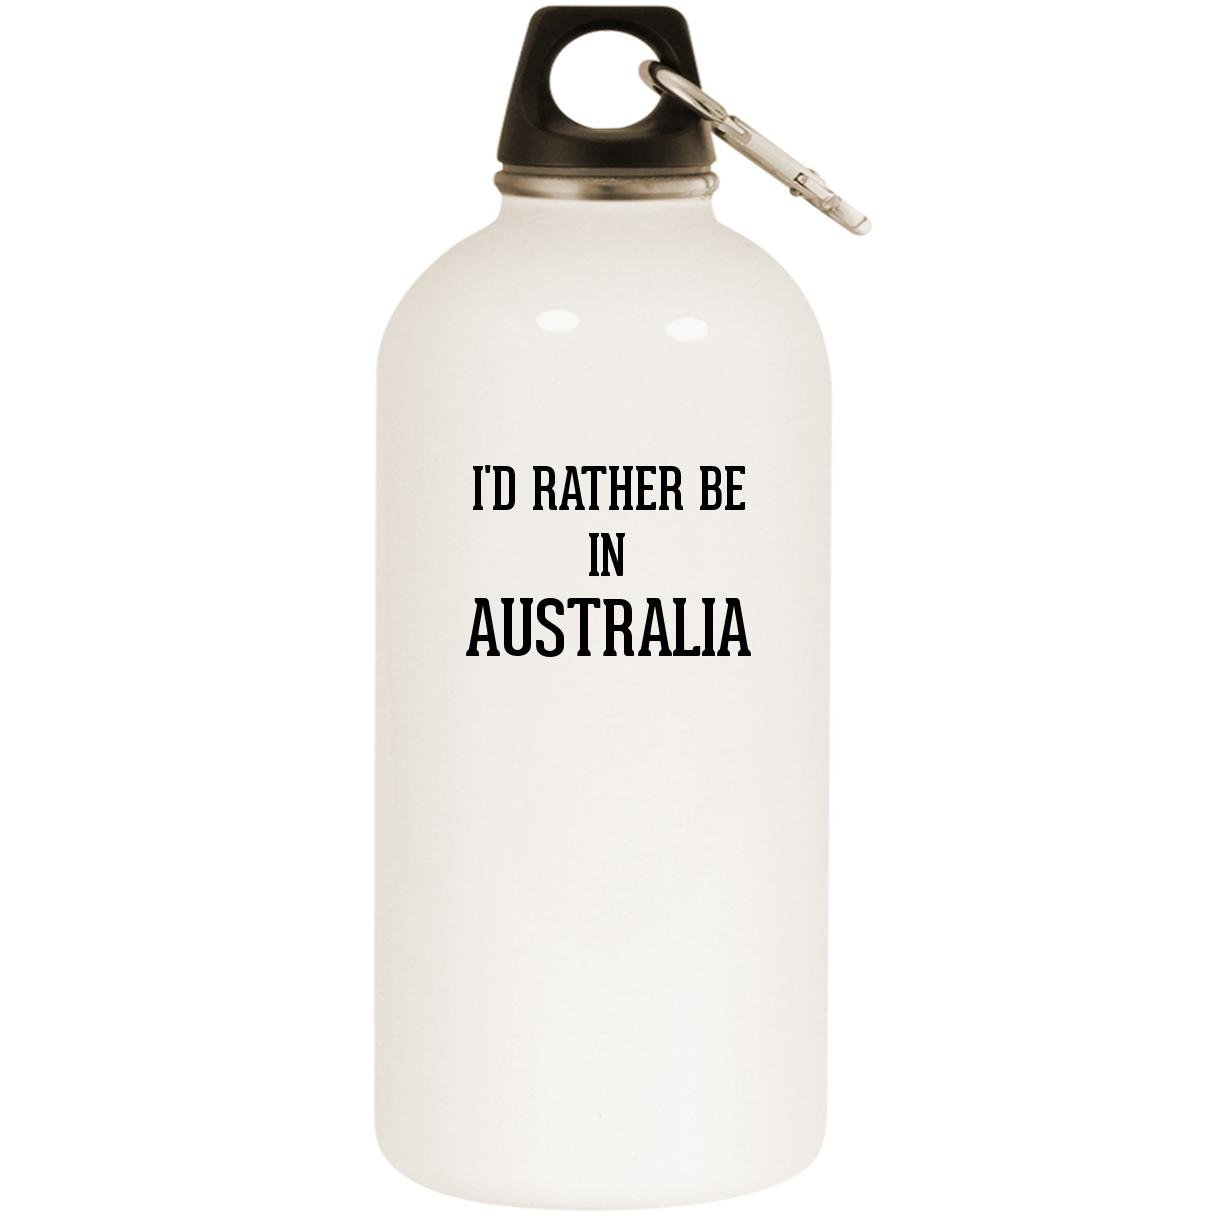 I'd Rather Be In AUSTRALIA - White 20oz Stainless Steel Water Bottle with Carabiner